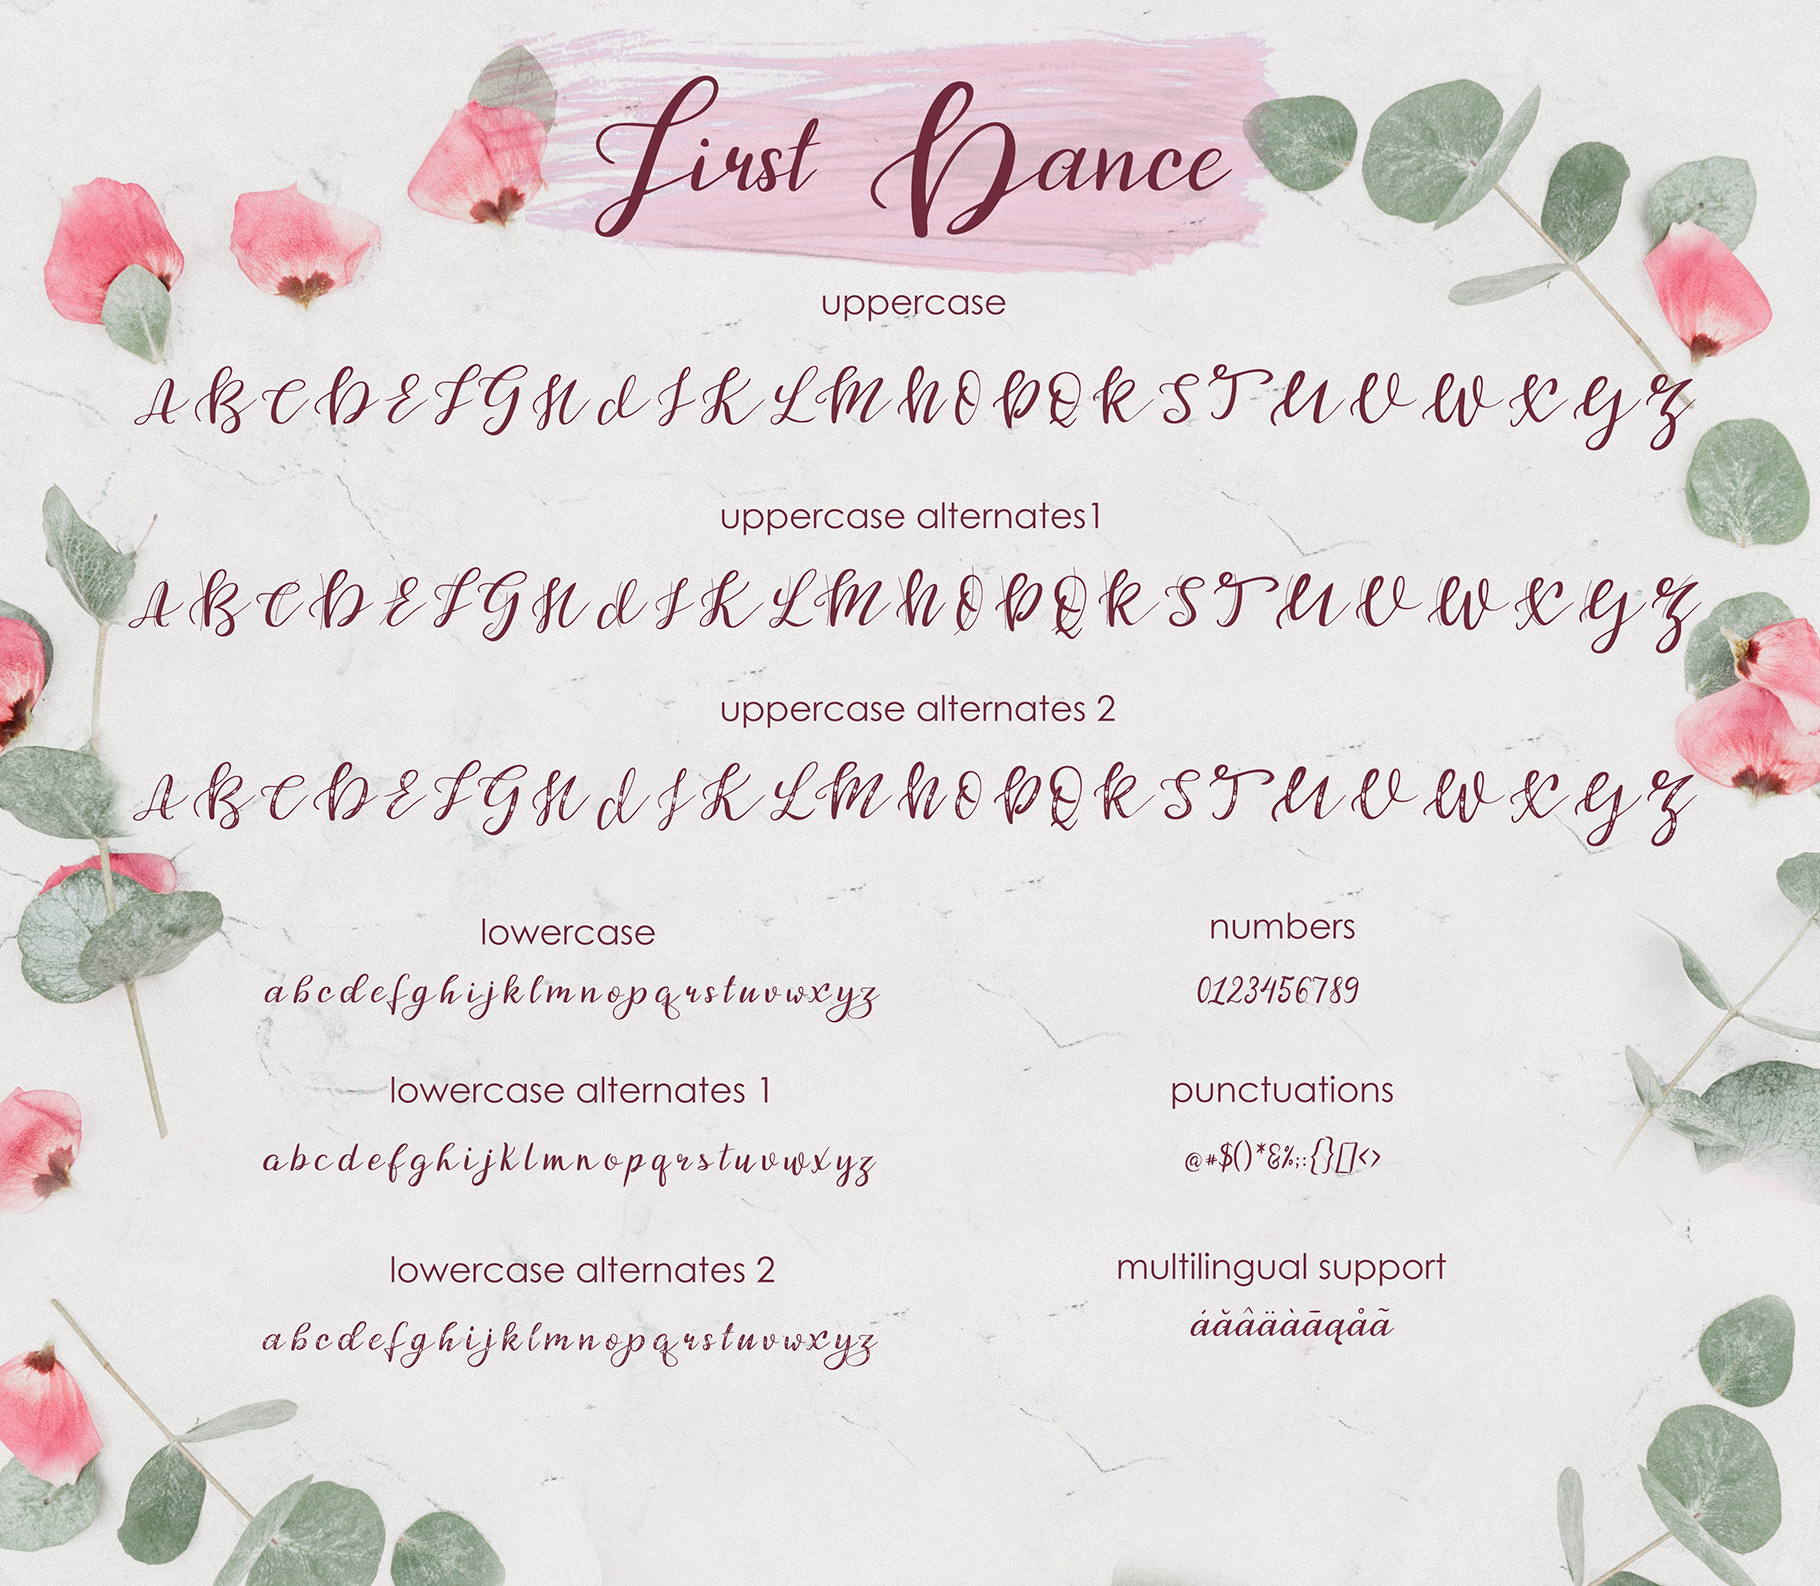 First Dance Font By tregubova.jul Image 7